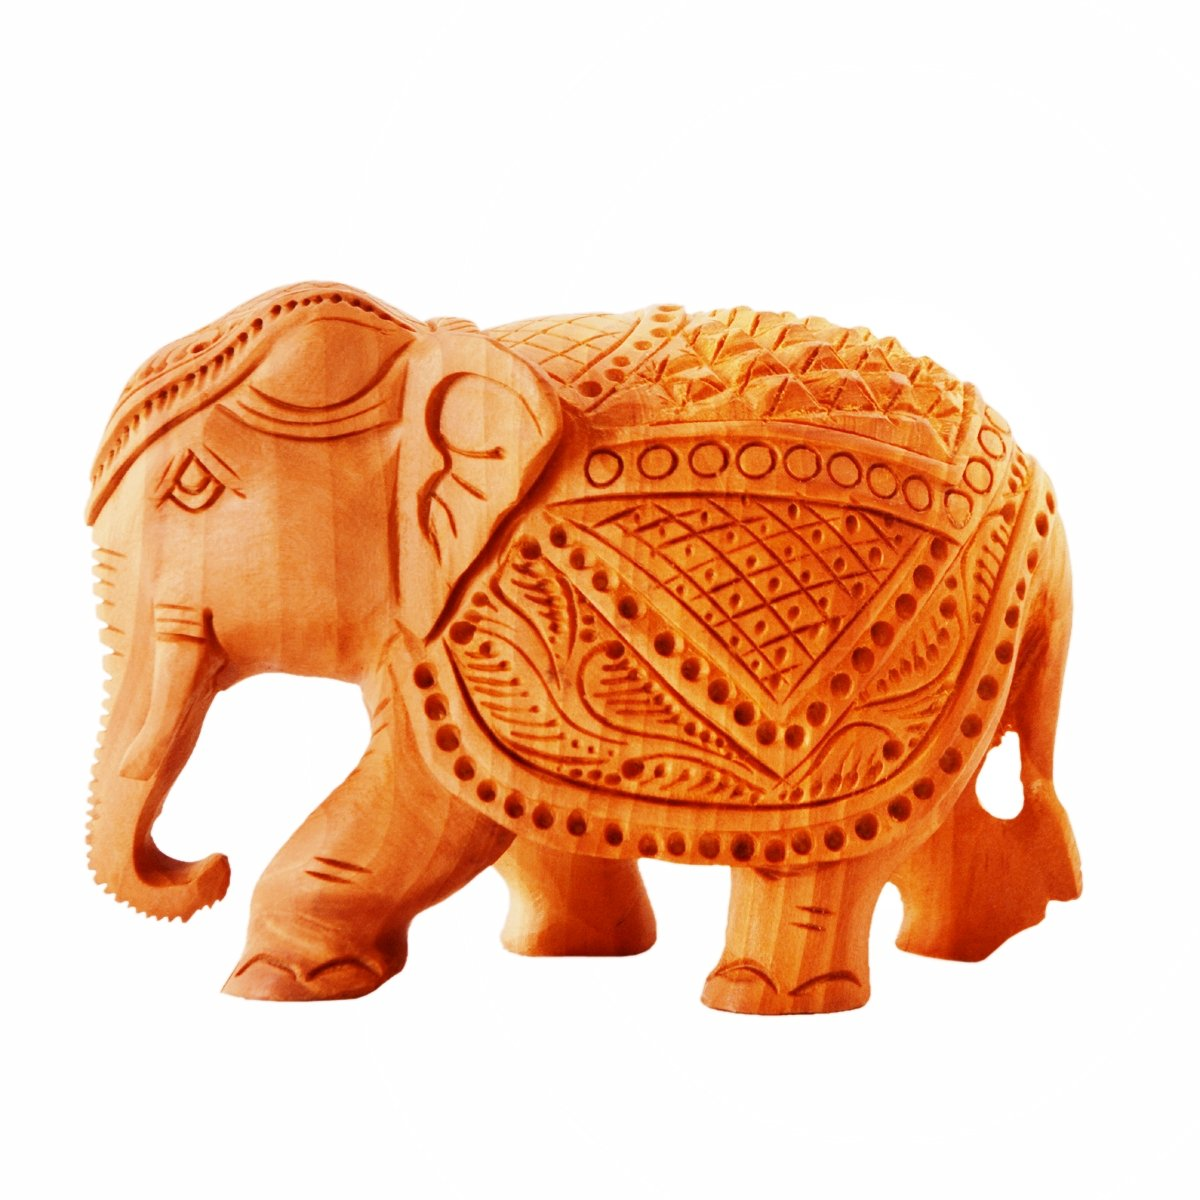 Kalto Solid wood Carved Elephant Miniature Idol for Table Tops, Showpiece